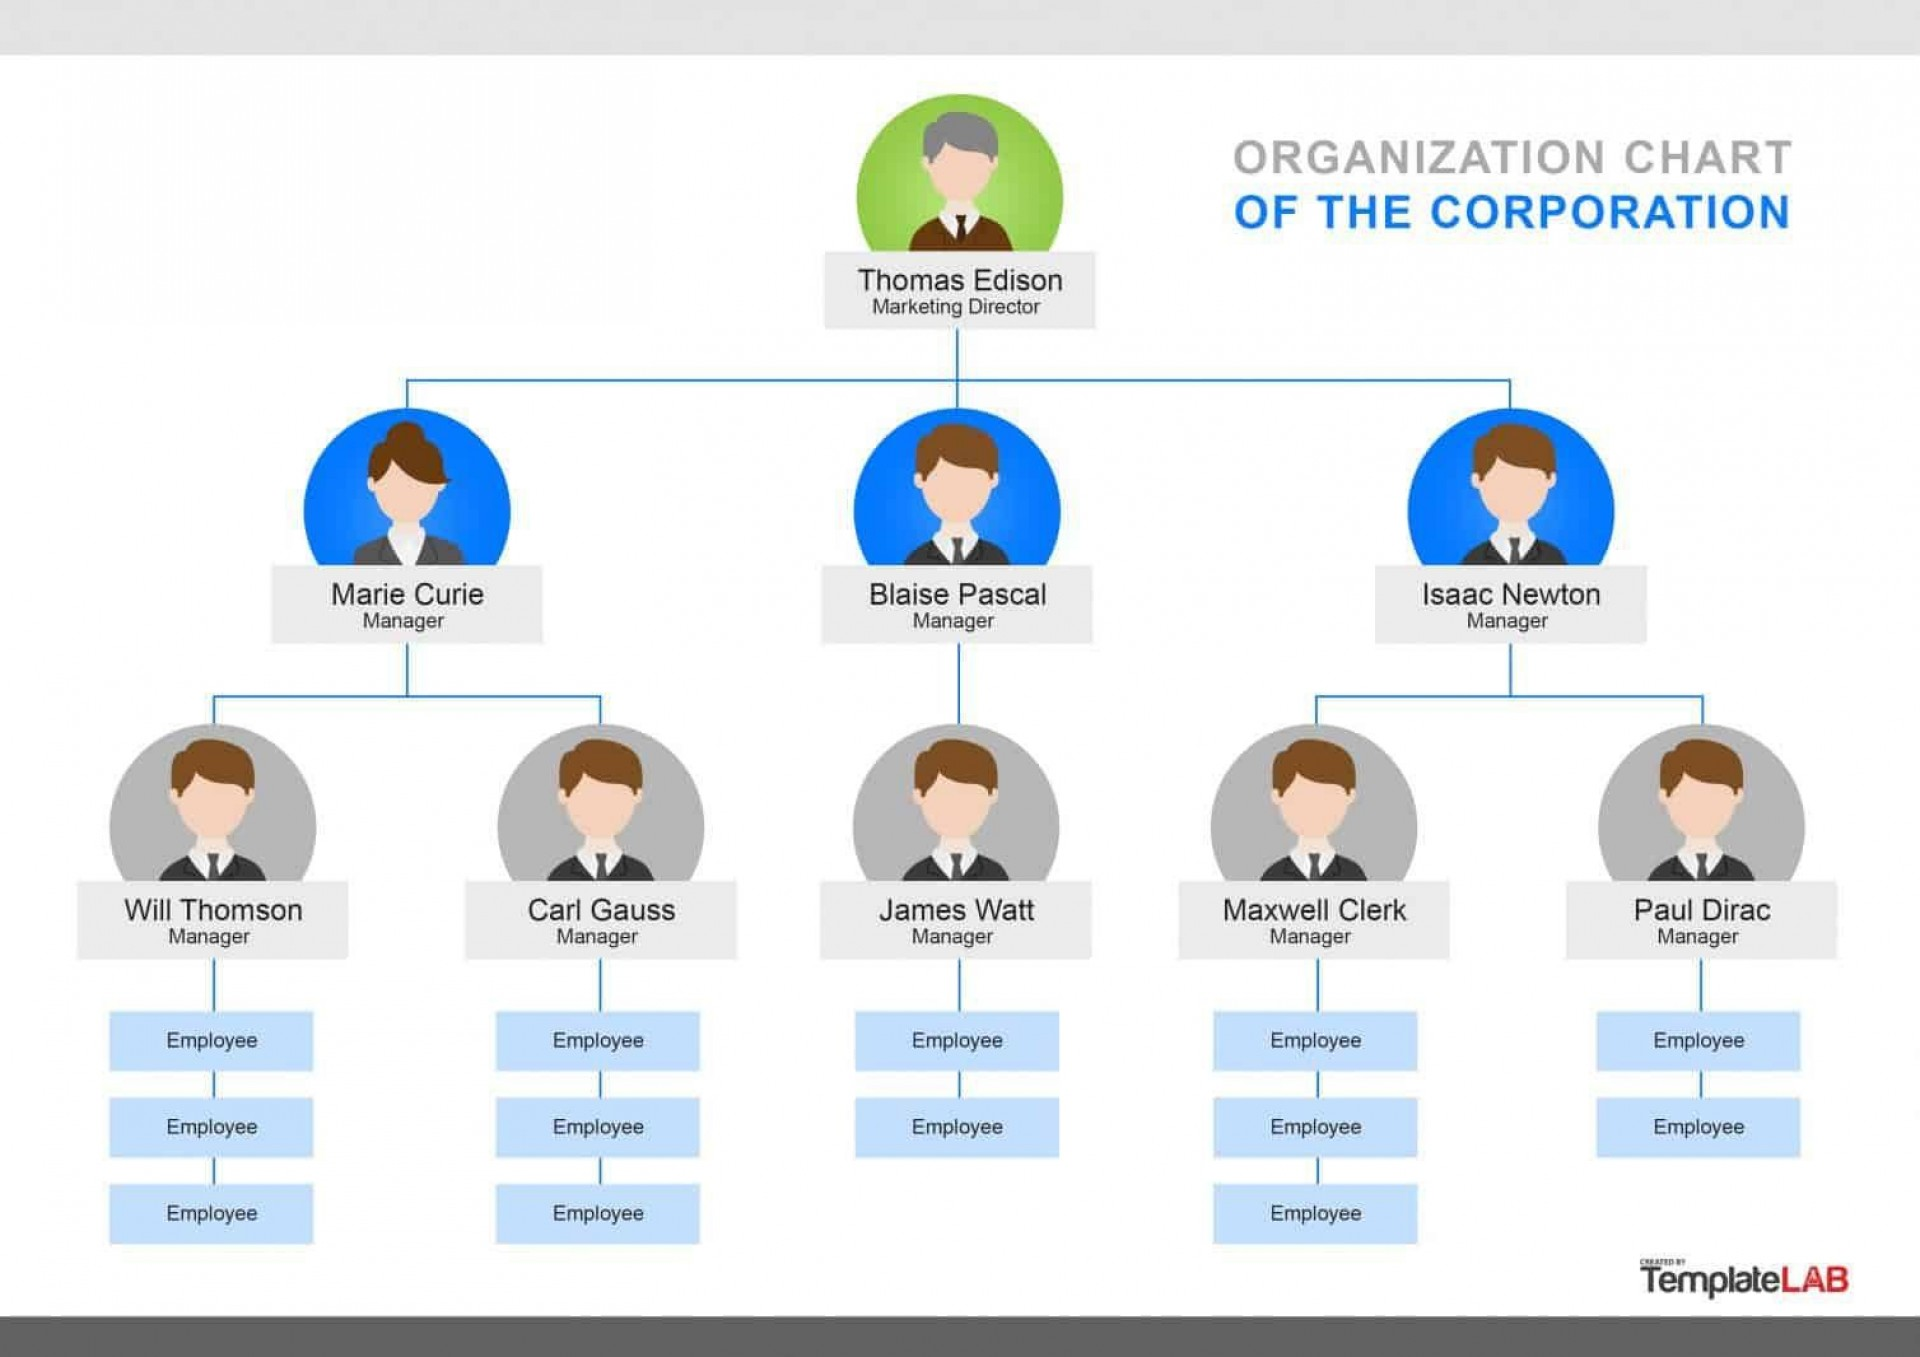 000 Singular Organizational Chart Template Word Concept  Simple Free Download 2013 20101920